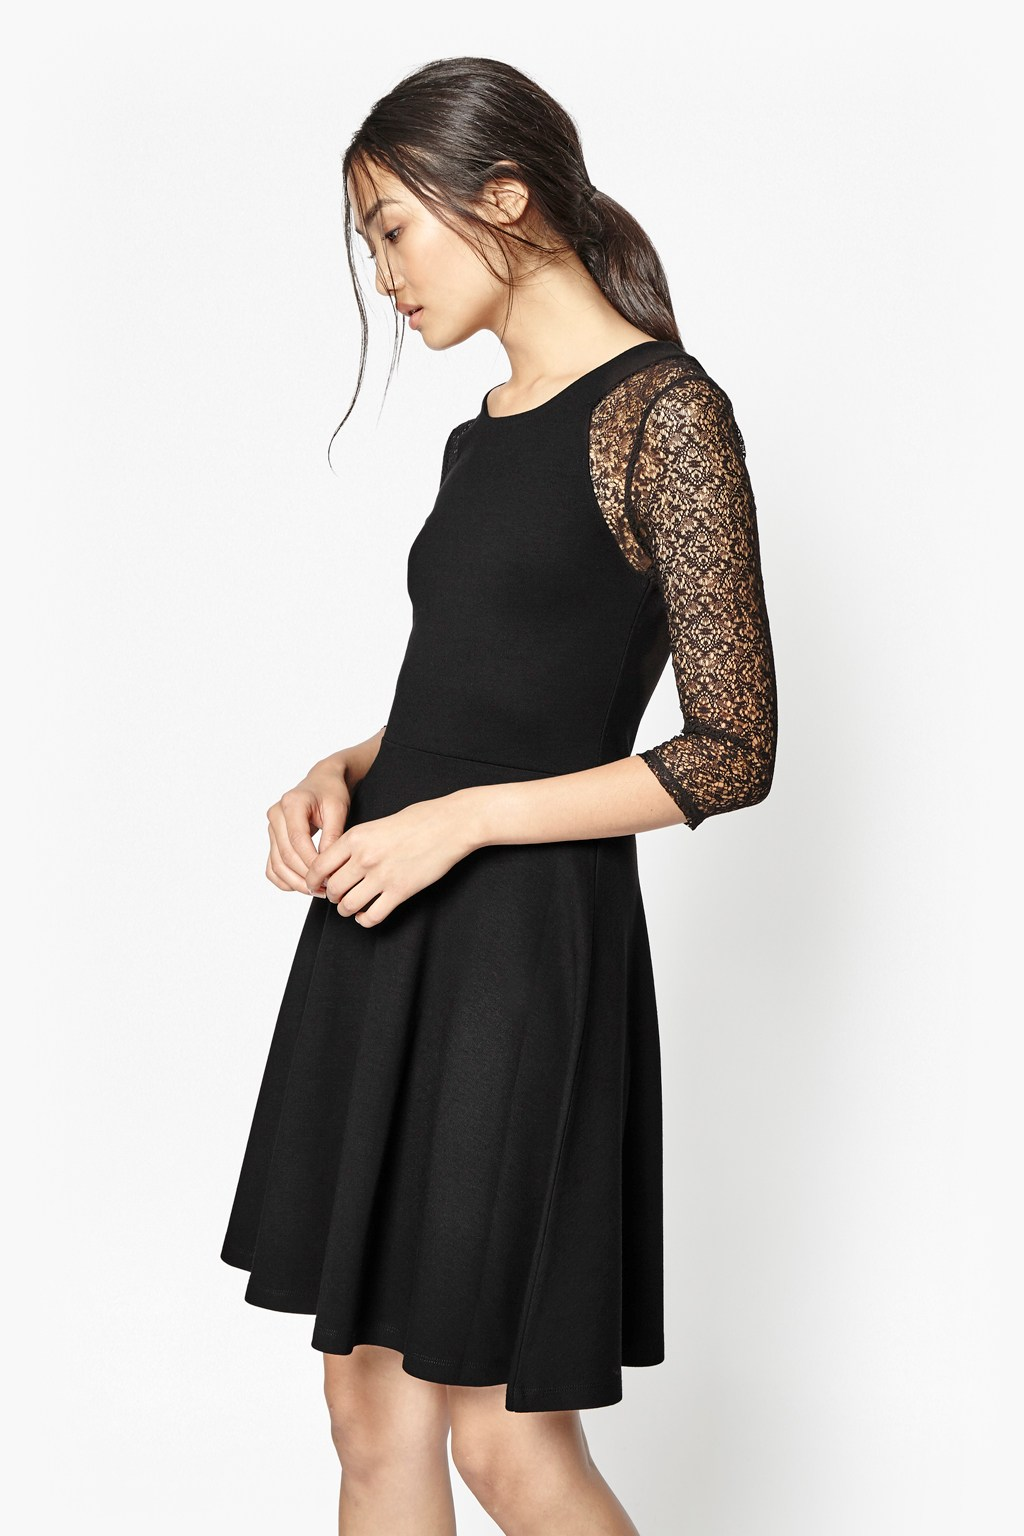 Shop for womens jersey knit dress online at Target. Free shipping on purchases over $35 and save 5% every day with your Target REDcard.